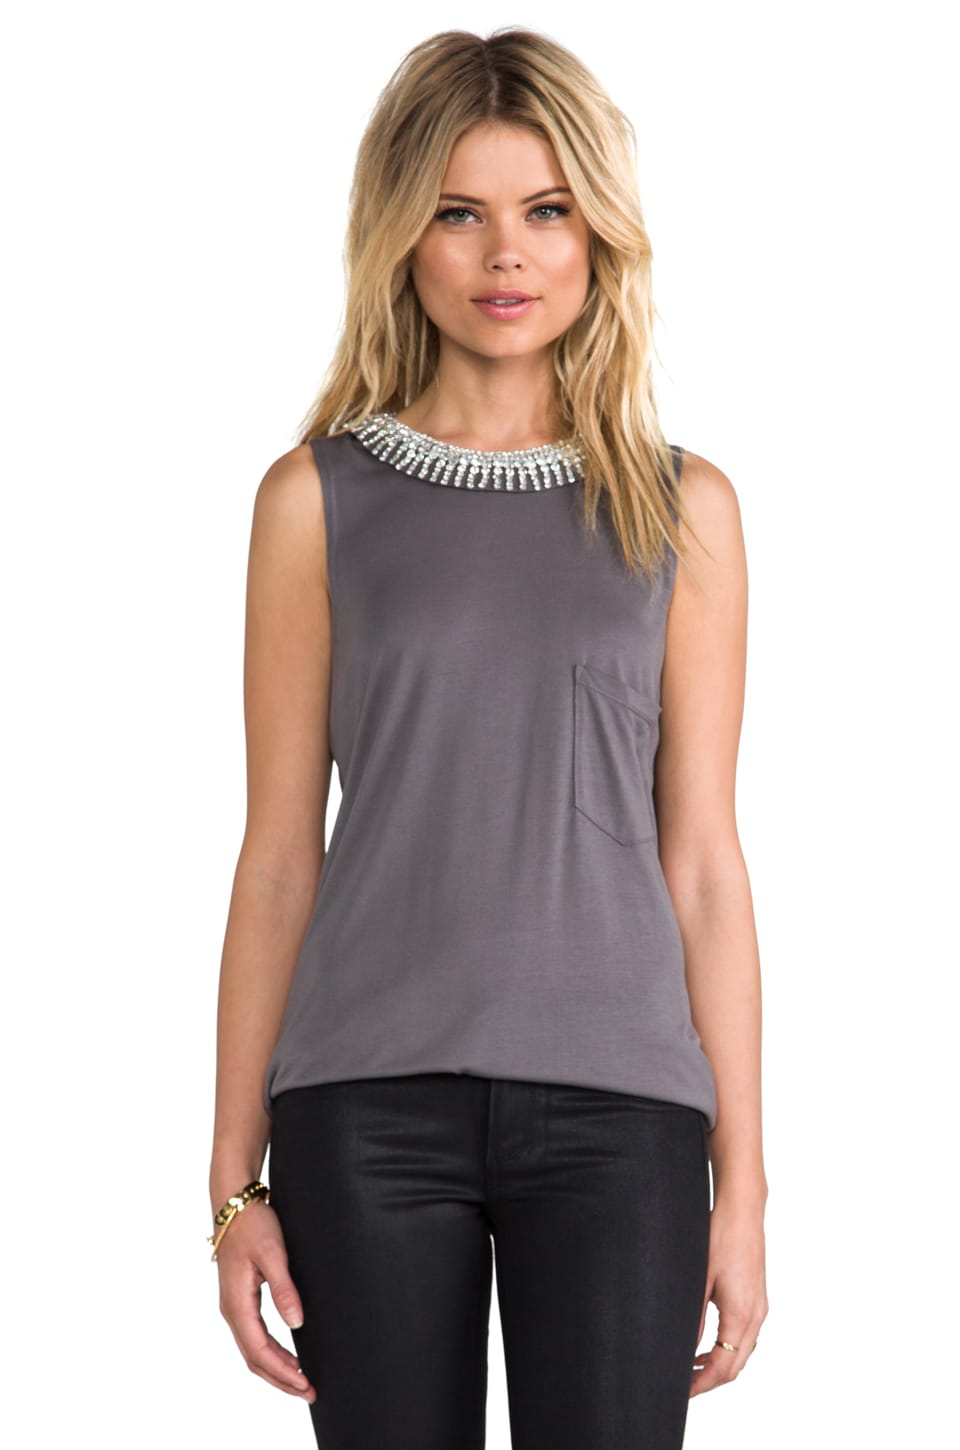 Haute Hippie Muscle Tank with Embellished Neck in Graphite & Crystal